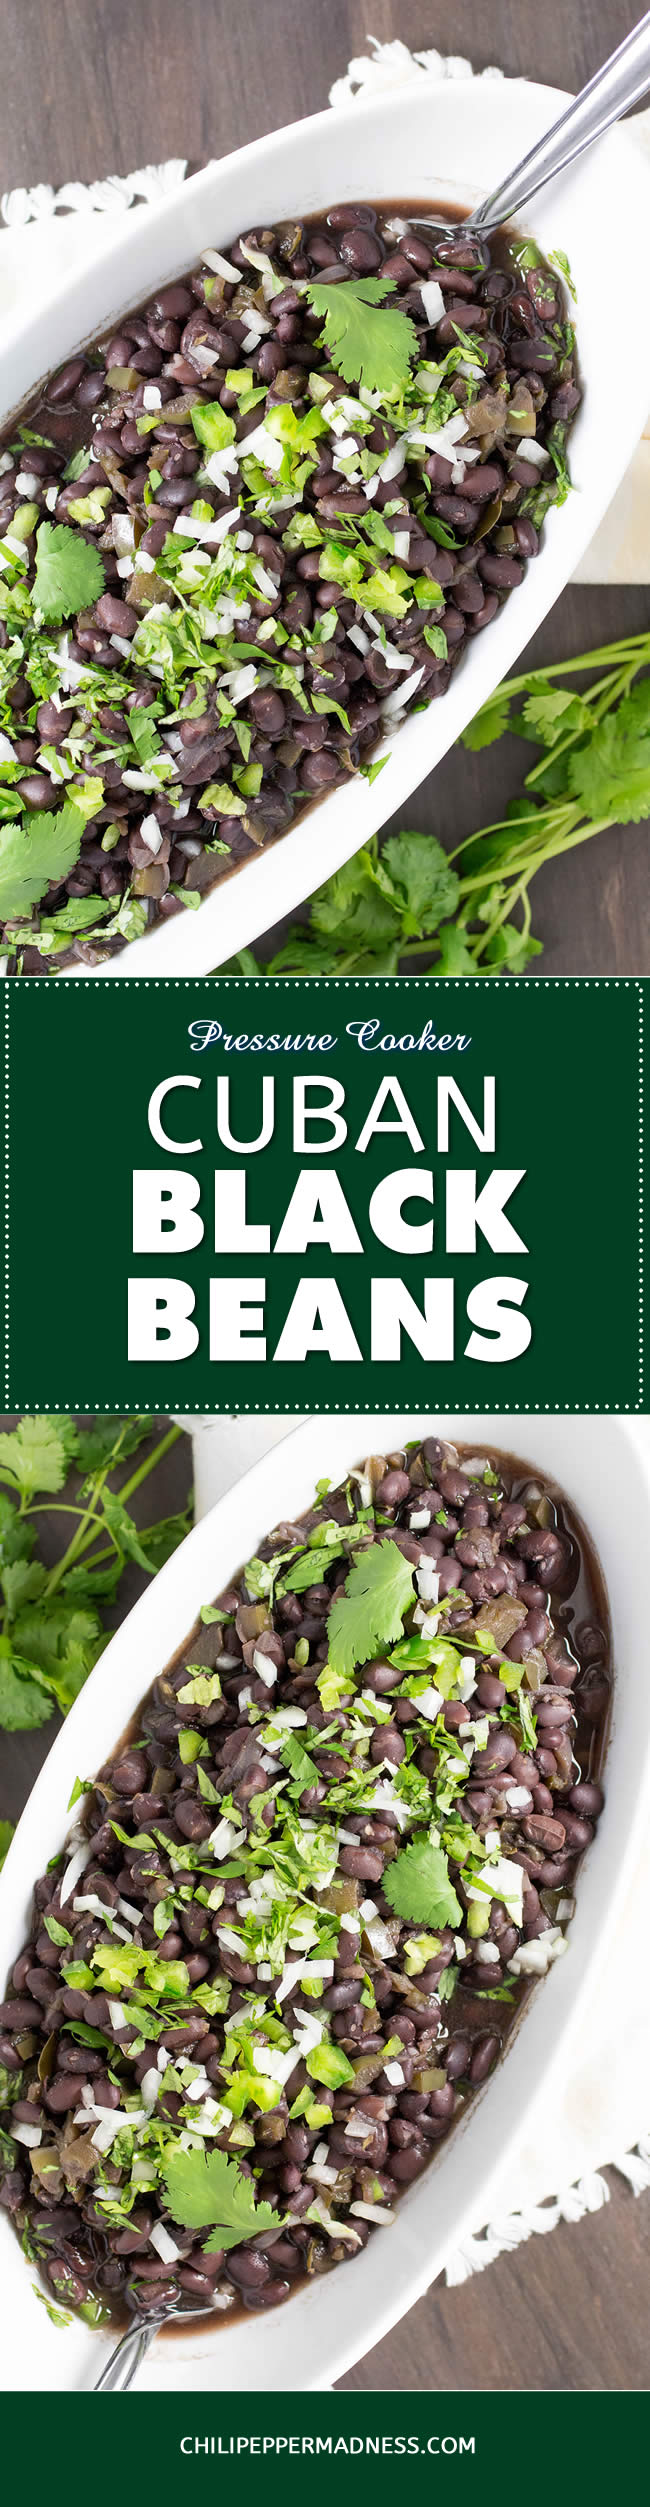 Pressure Cooker Cuban Black Beans - Recipe